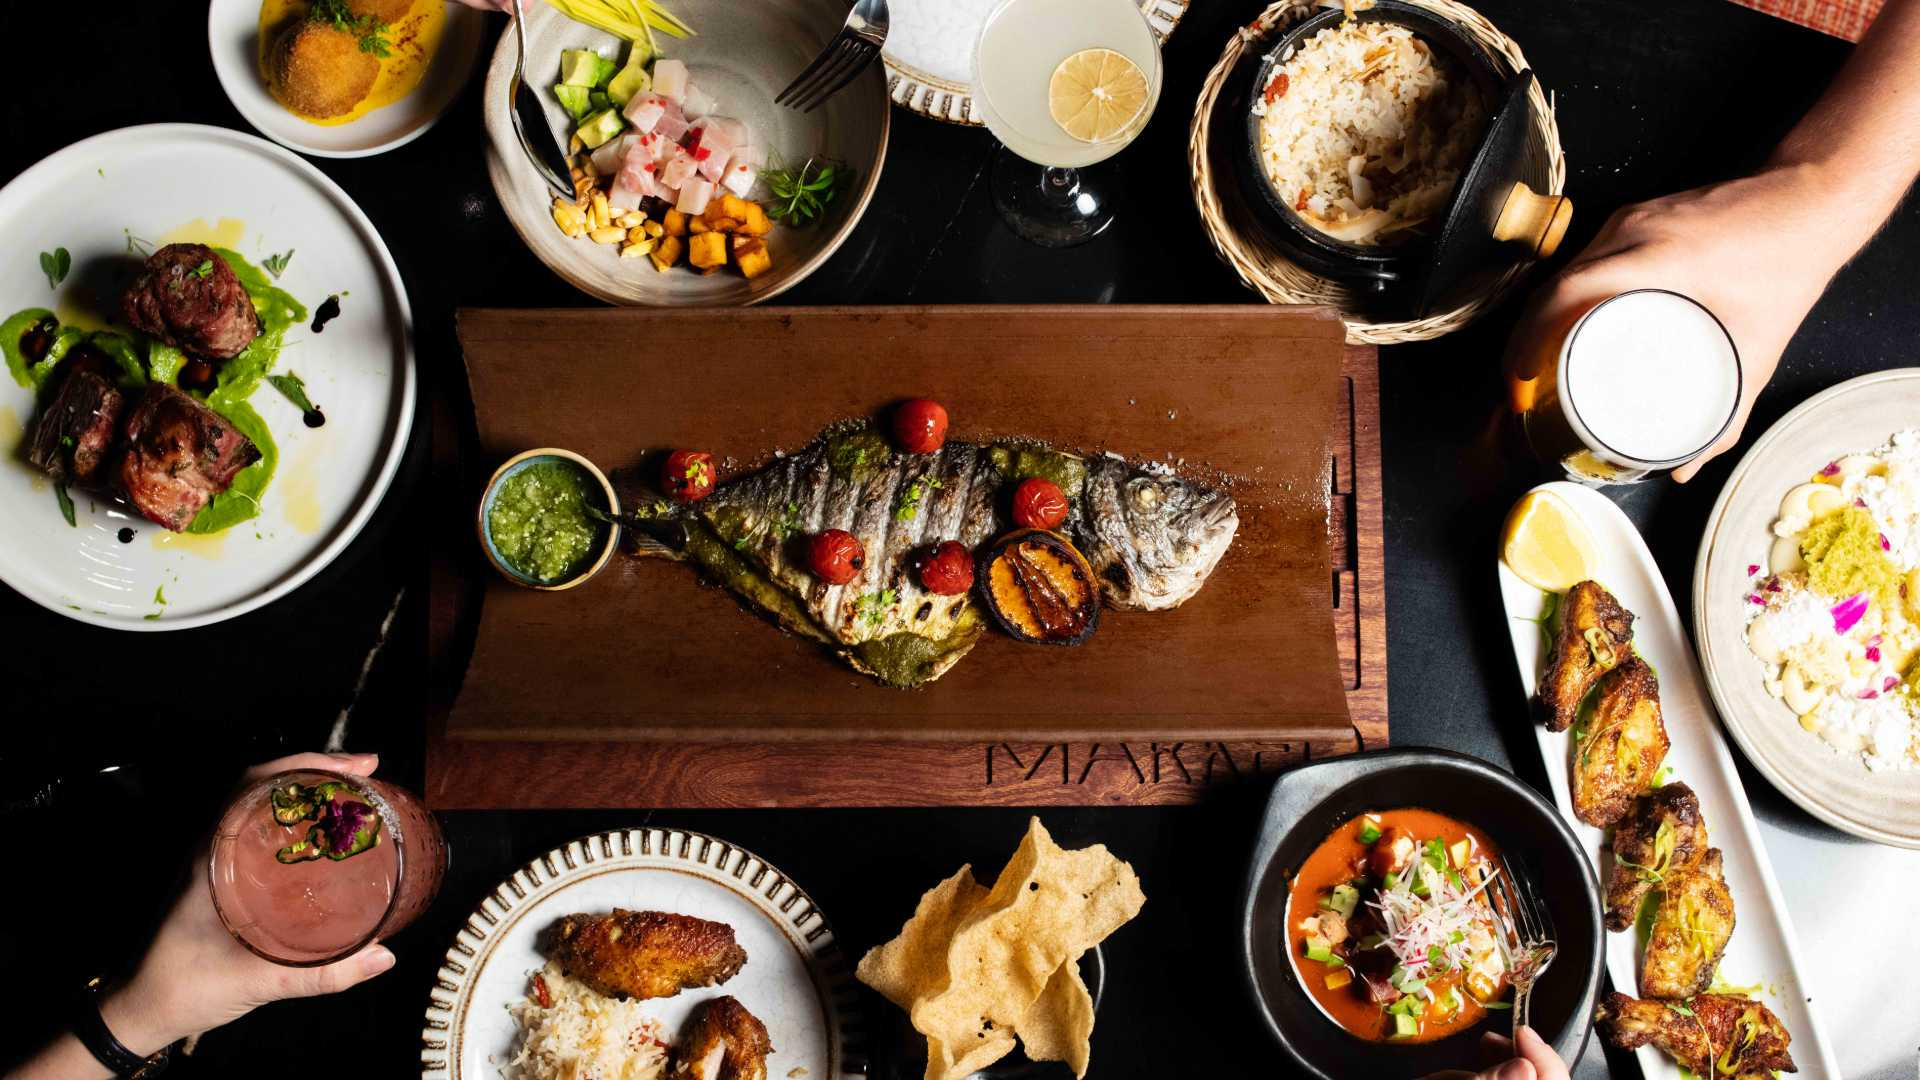 A spread at Marked, a new South American restaurant in Toronto